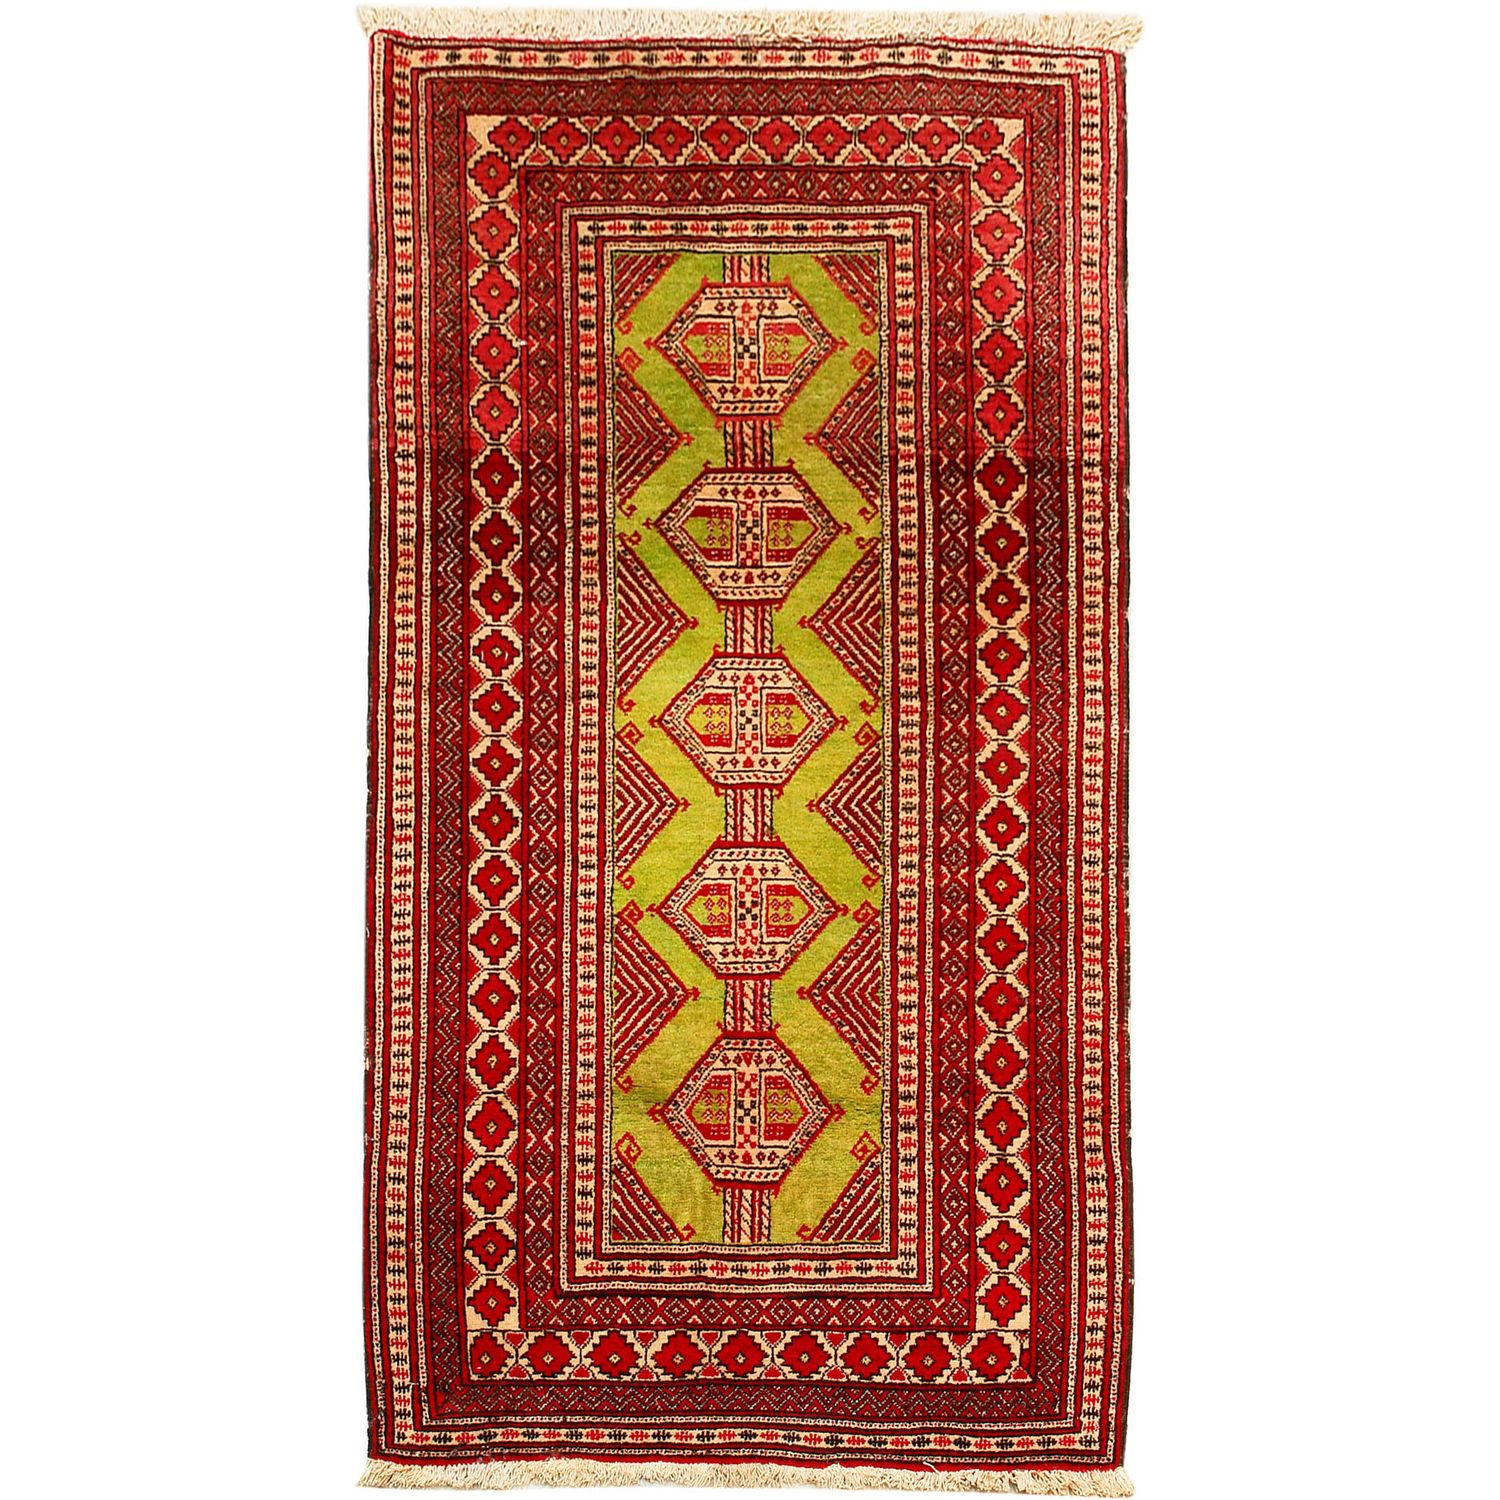 Beluch 205x110cm Wool Persian Style Rug